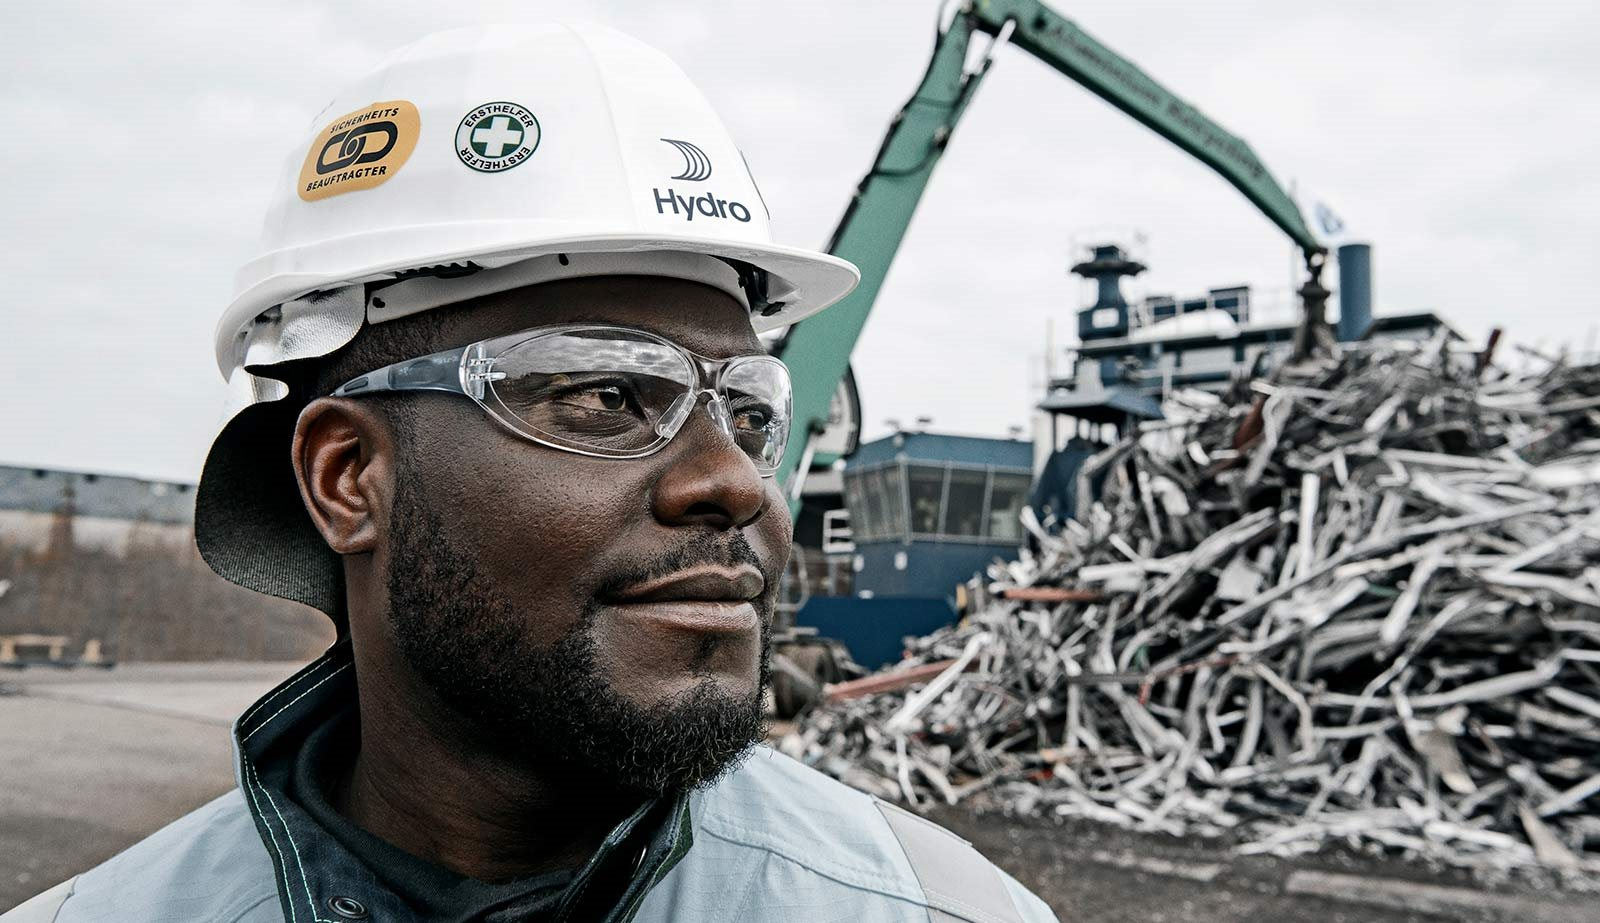 operator at St. Peter recycling plant in Dormagen, Germany.